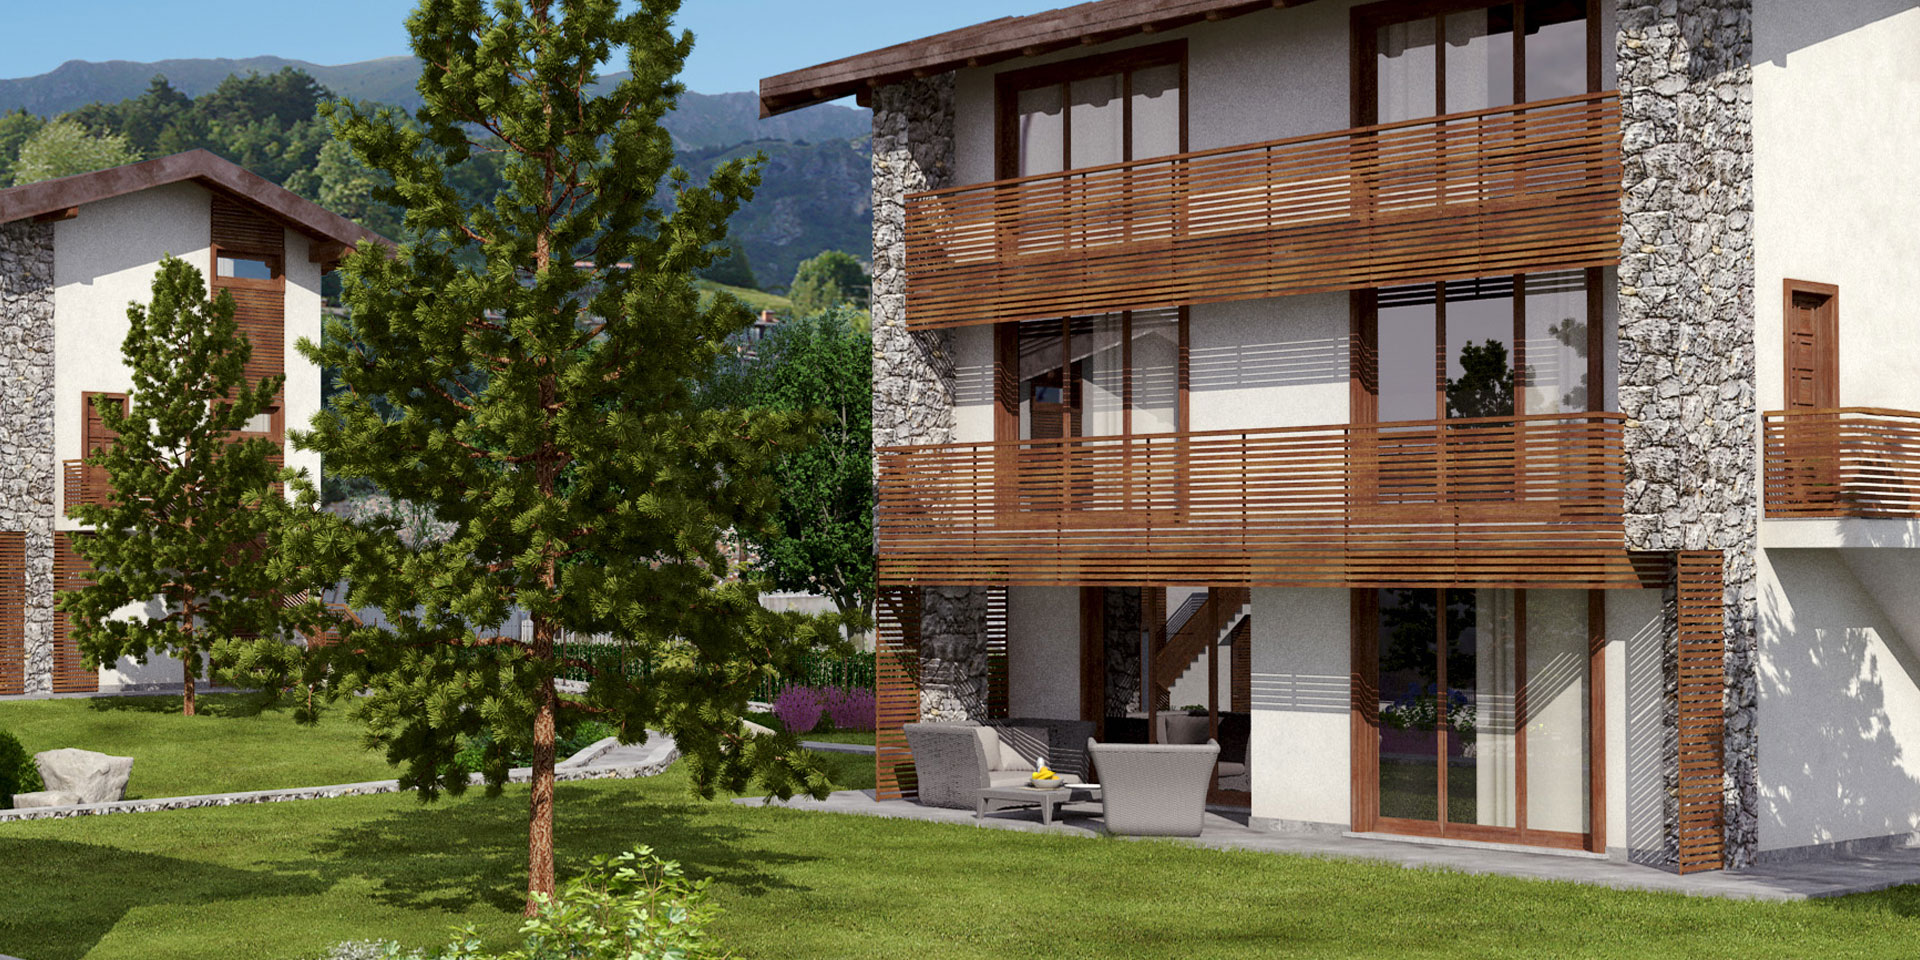 Lombardy villas for sale Val Seriana (BG) Lombardy